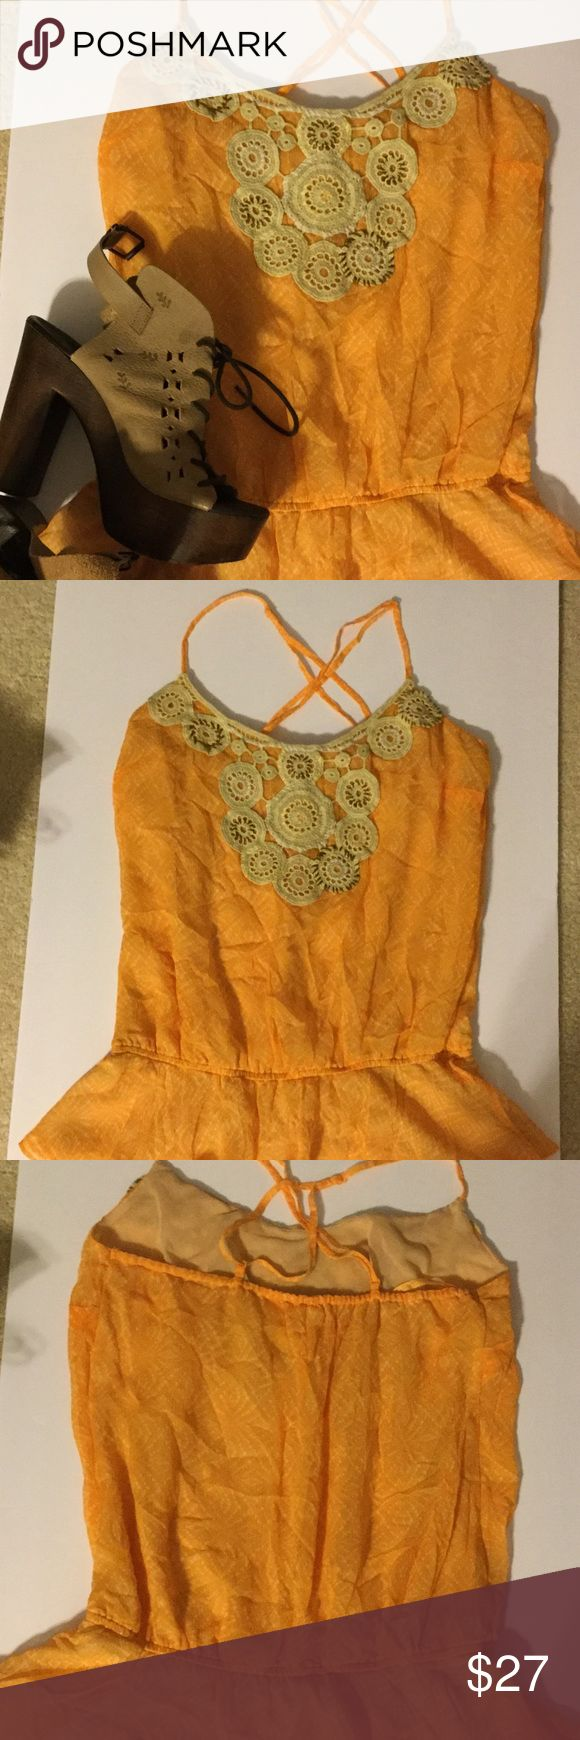 Free People crochet top SALE THIS WEEKEND ONLY 👗 Free People orange patterned top with crochet detail at the neck as shown in last picture. This top has adjustable spaghetti straps. This top is dry clean only. The top is approx 25 inches from top of strap to bottom of hem. Free People Tops Blouses